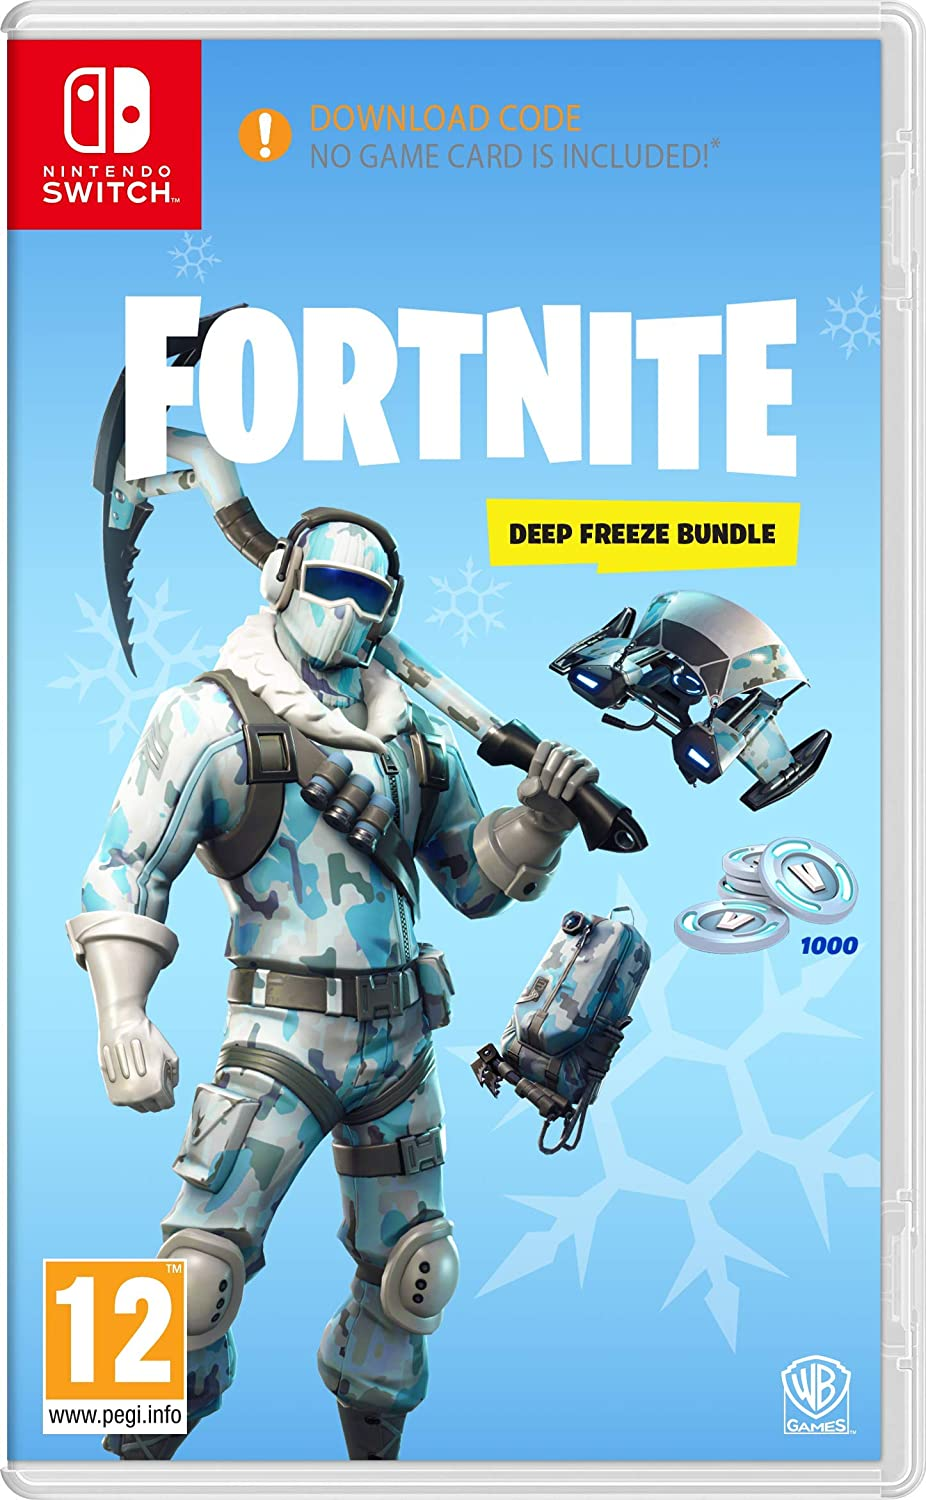 Will There Be A New Wii Switch Fornite Bundle Christmas 2020 Amazon.com: Fortnite: Deep Freeze Bundle (Nintendo Switch): Video